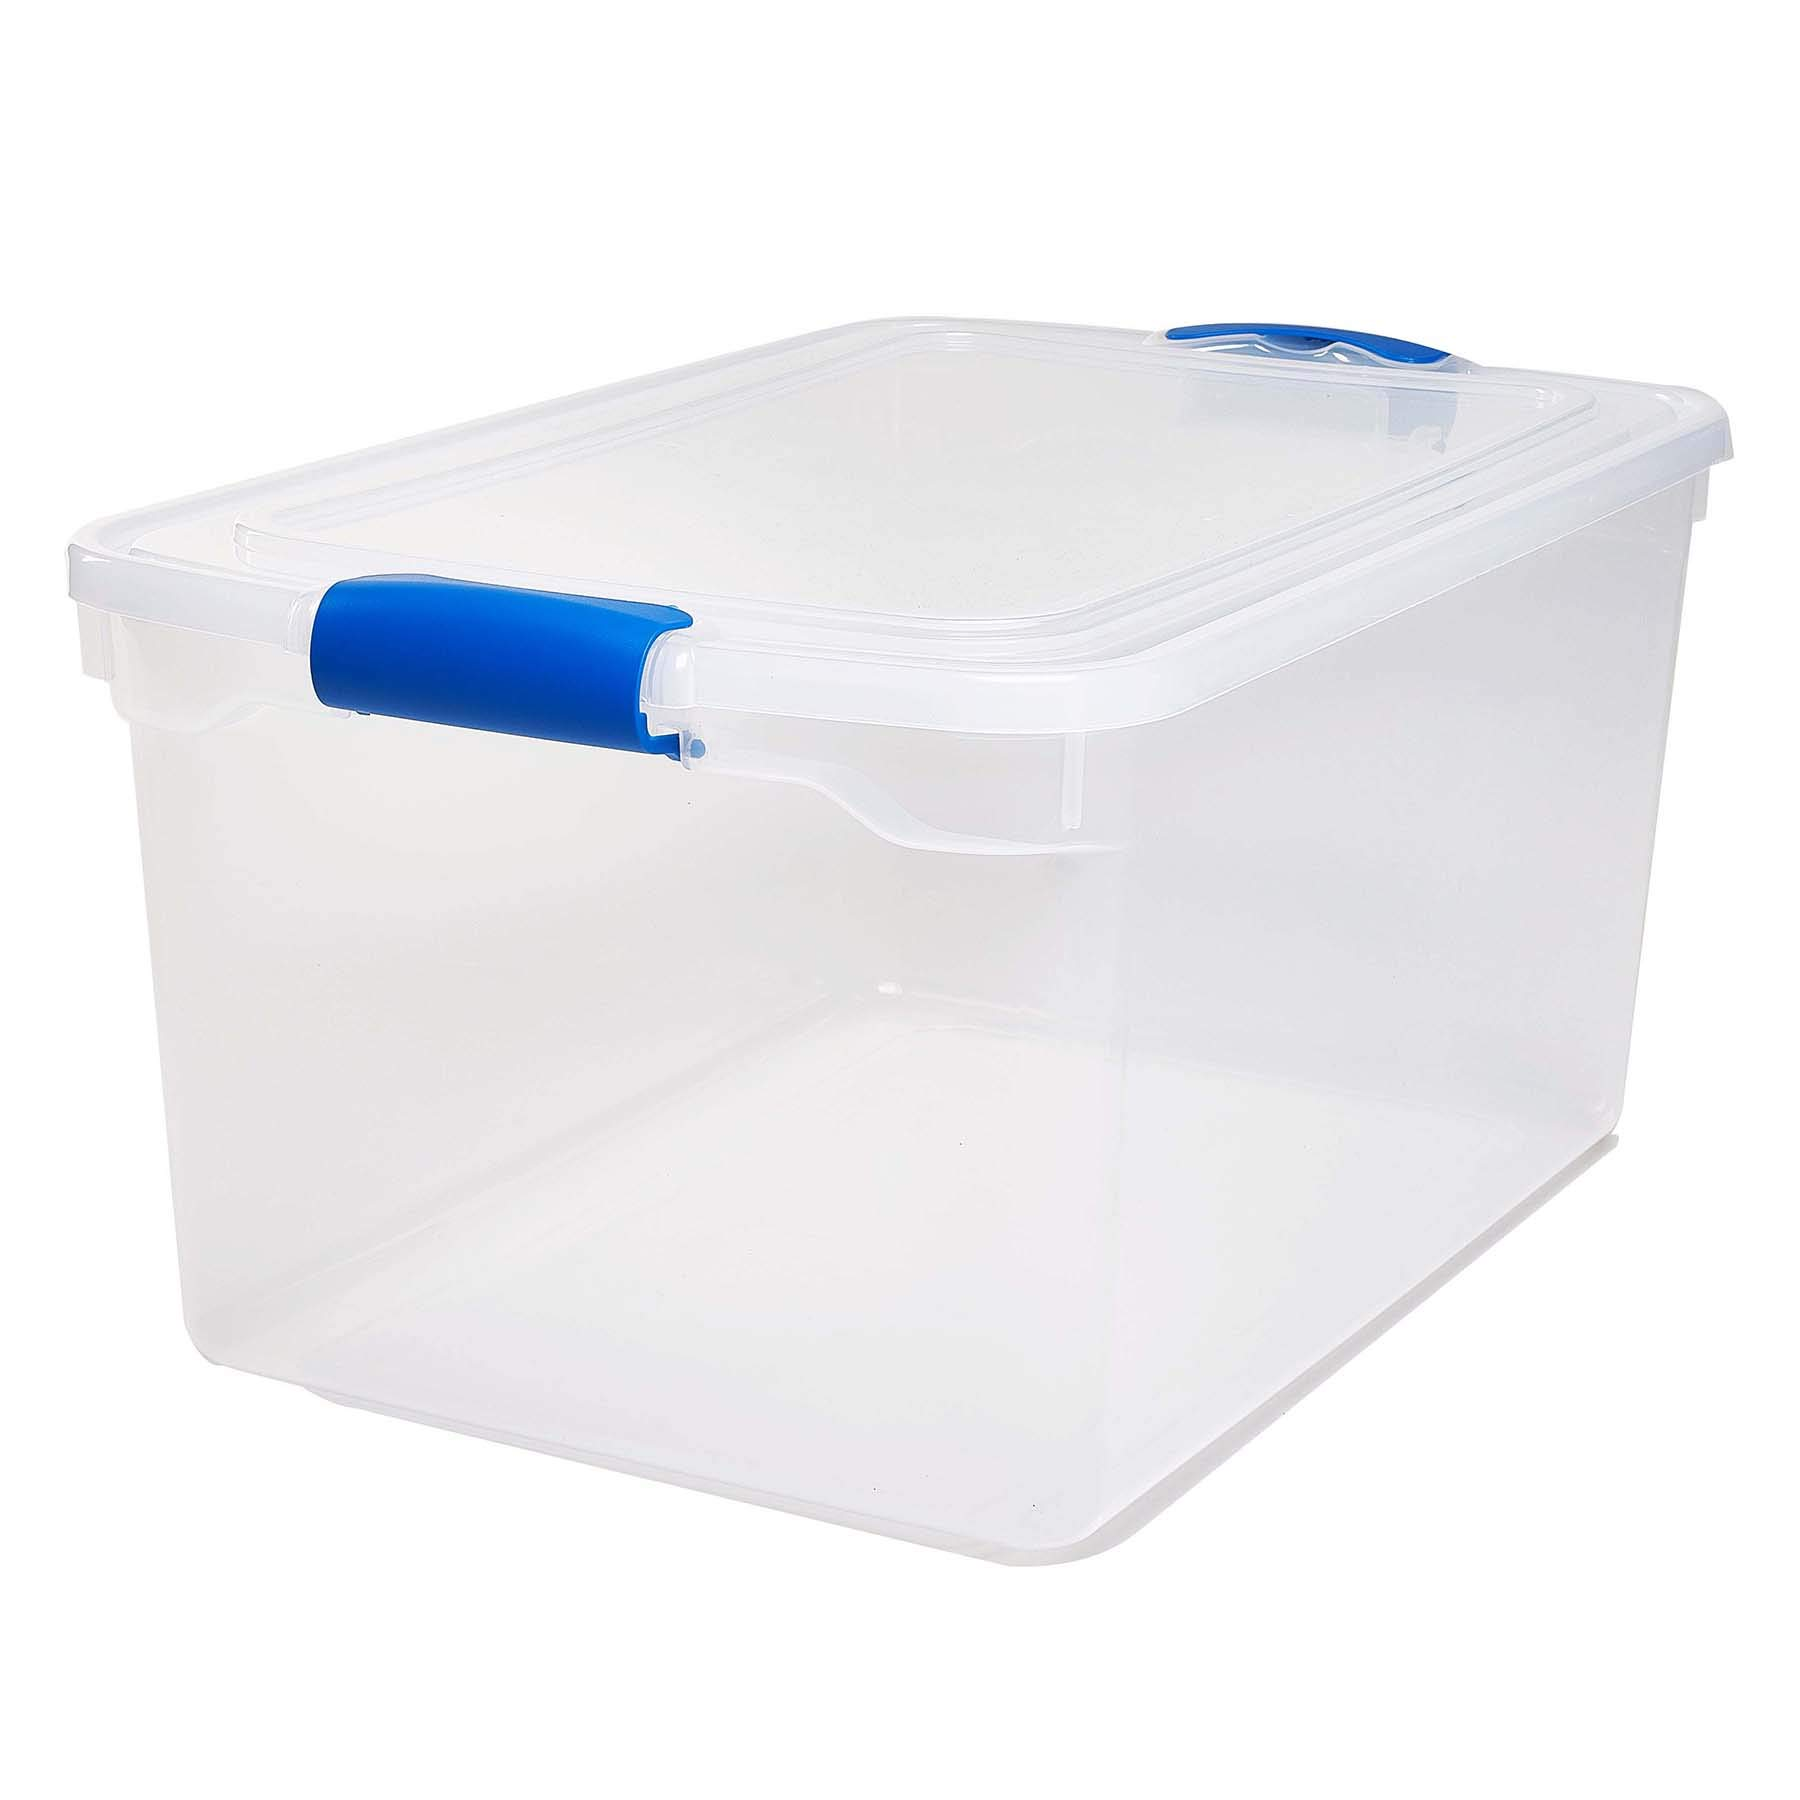 Homz Plastic Storage, Modular Stackable Storage Bins with Blue Latching Handles, 66 Quart, Clear, 2-Pack by Homz